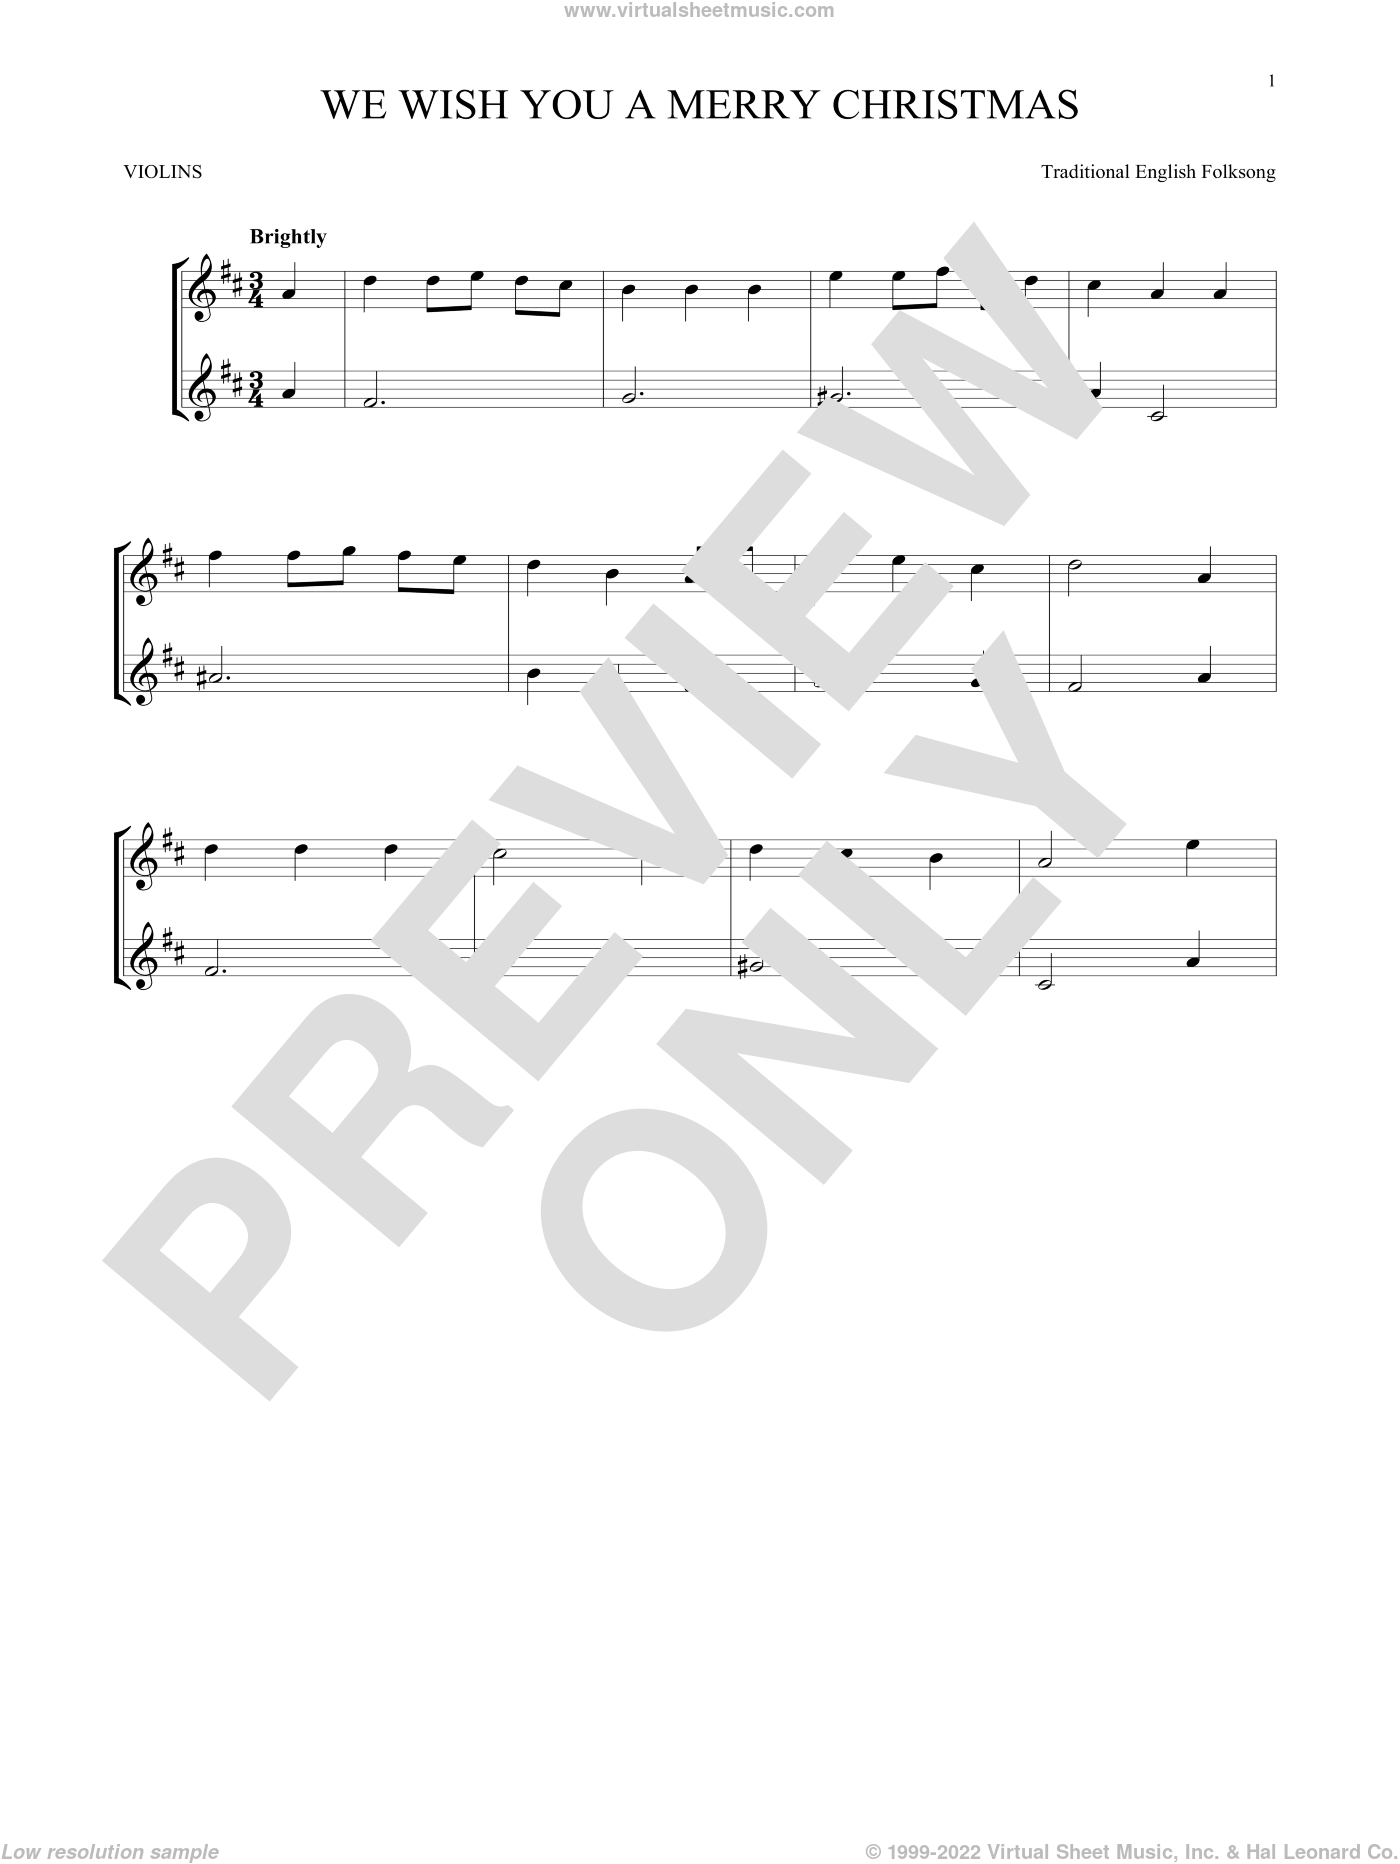 We Wish You A Merry Christmas sheet music for two violins (duets, violin duets), intermediate skill level